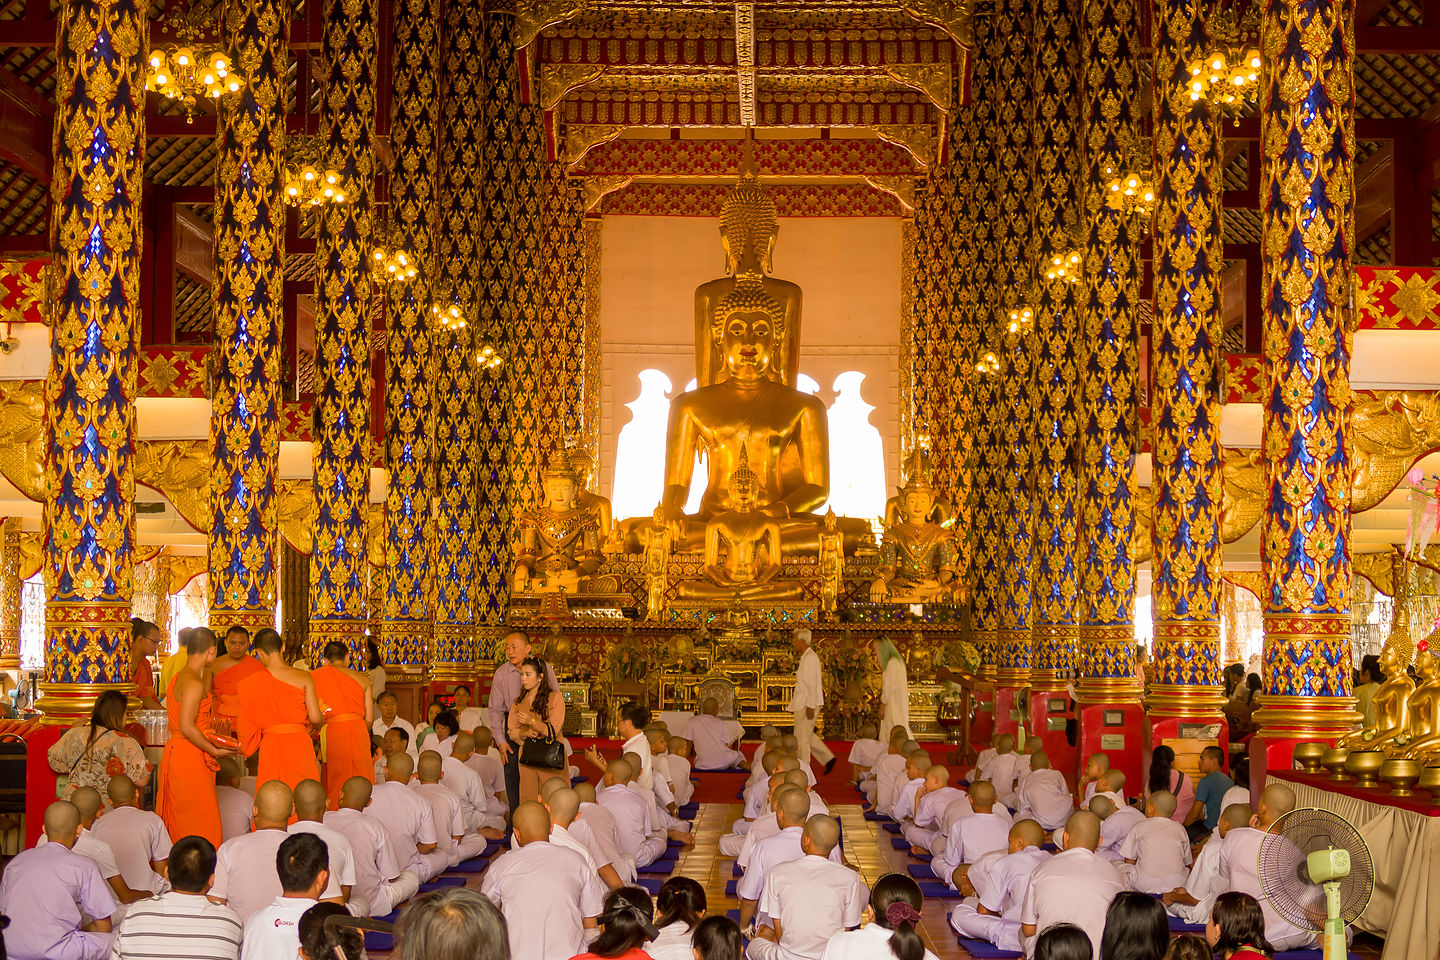 Ordination of young monks at Wat Suan Dok